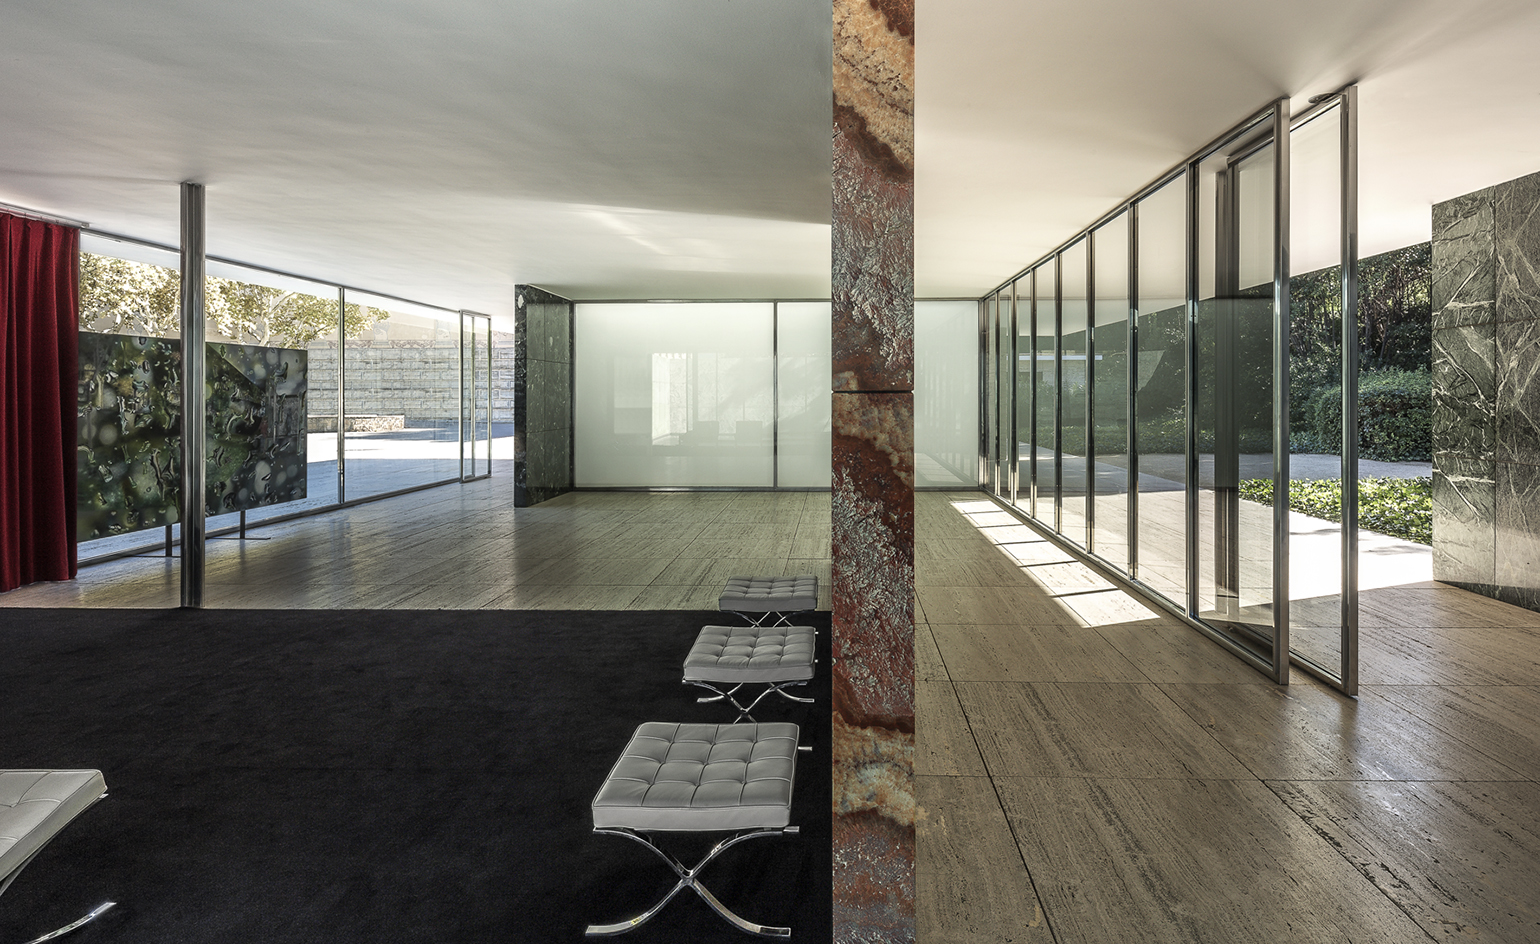 mies van der rohe 39 s barcelona pavilion celebrates 30 years what we do is secret. Black Bedroom Furniture Sets. Home Design Ideas